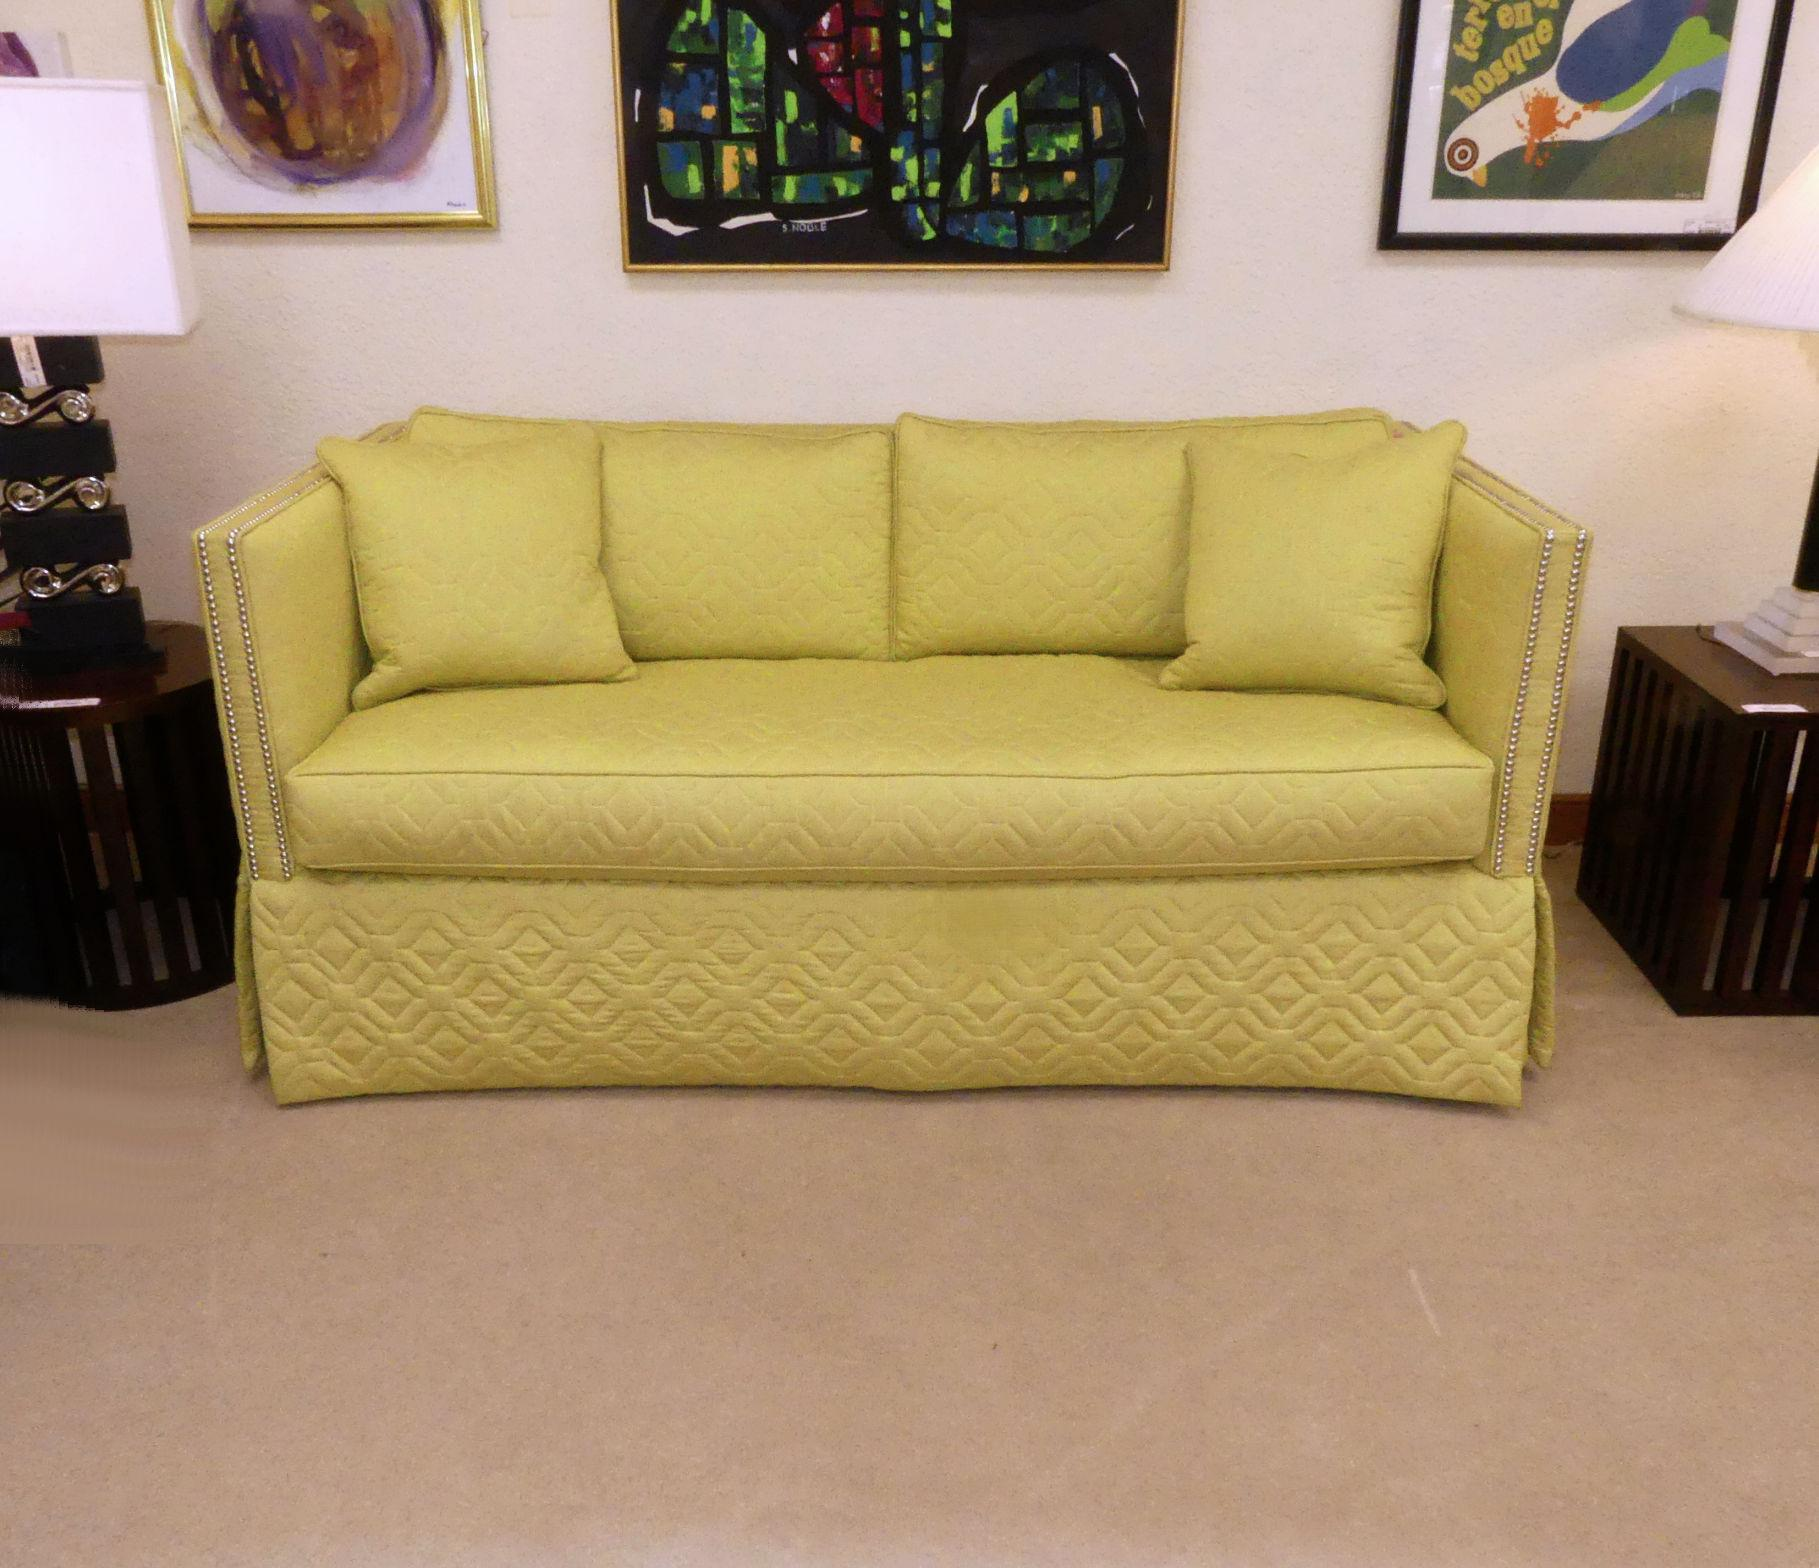 wesley hall sofas pelicula argentina sofa cama contemporary blake with nailhead trim chairish encore furniture gallery presents the blaine 71 by features a straight